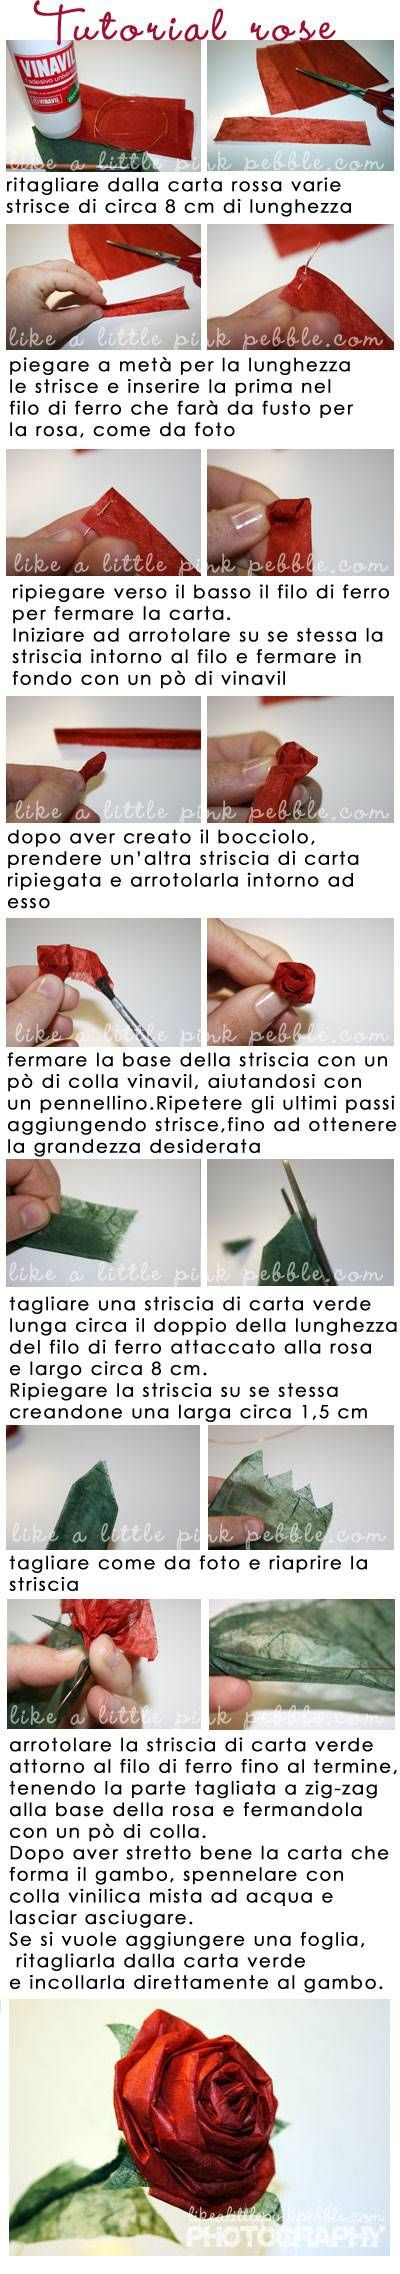 tutorial-rose-of-paper DIY ... in Italian, and some of the specifics are hard to see, but I'm pinning it because I love the final result... http://www.likealittlepinkpebble.com/2009/03/18/tutorial-rose-di-carta/#